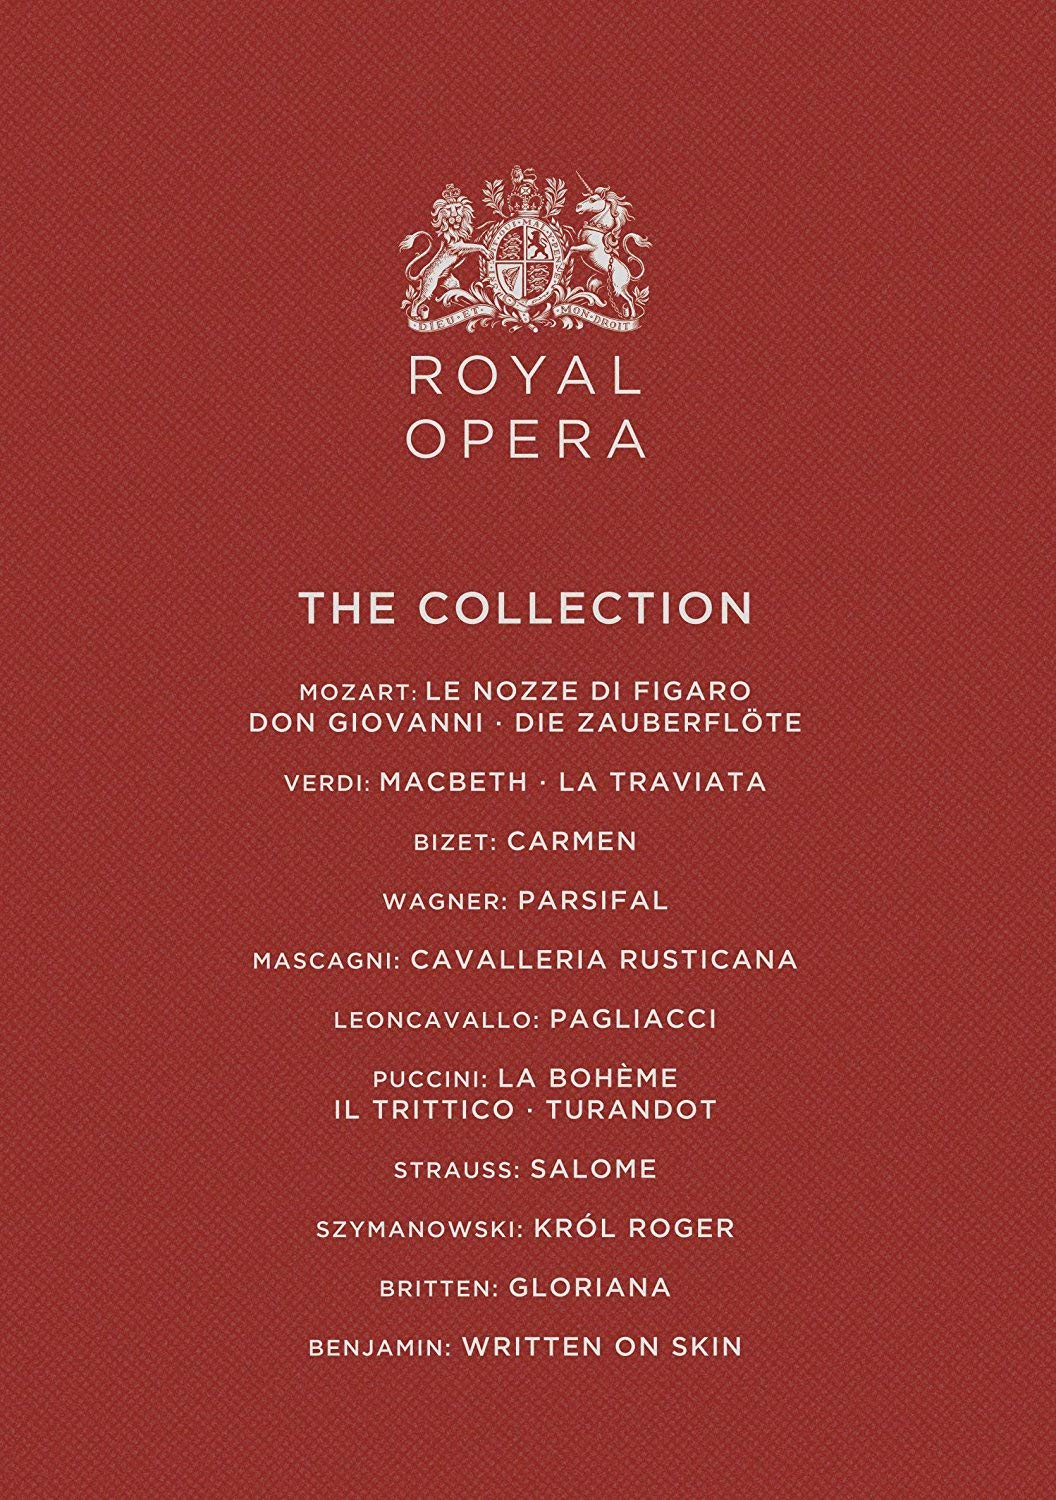 Blu-ray : MOZART - ORCHESTRA OF THE ROYAL OPERA HOUSE - Royal Opera Collection (Blu-ray)